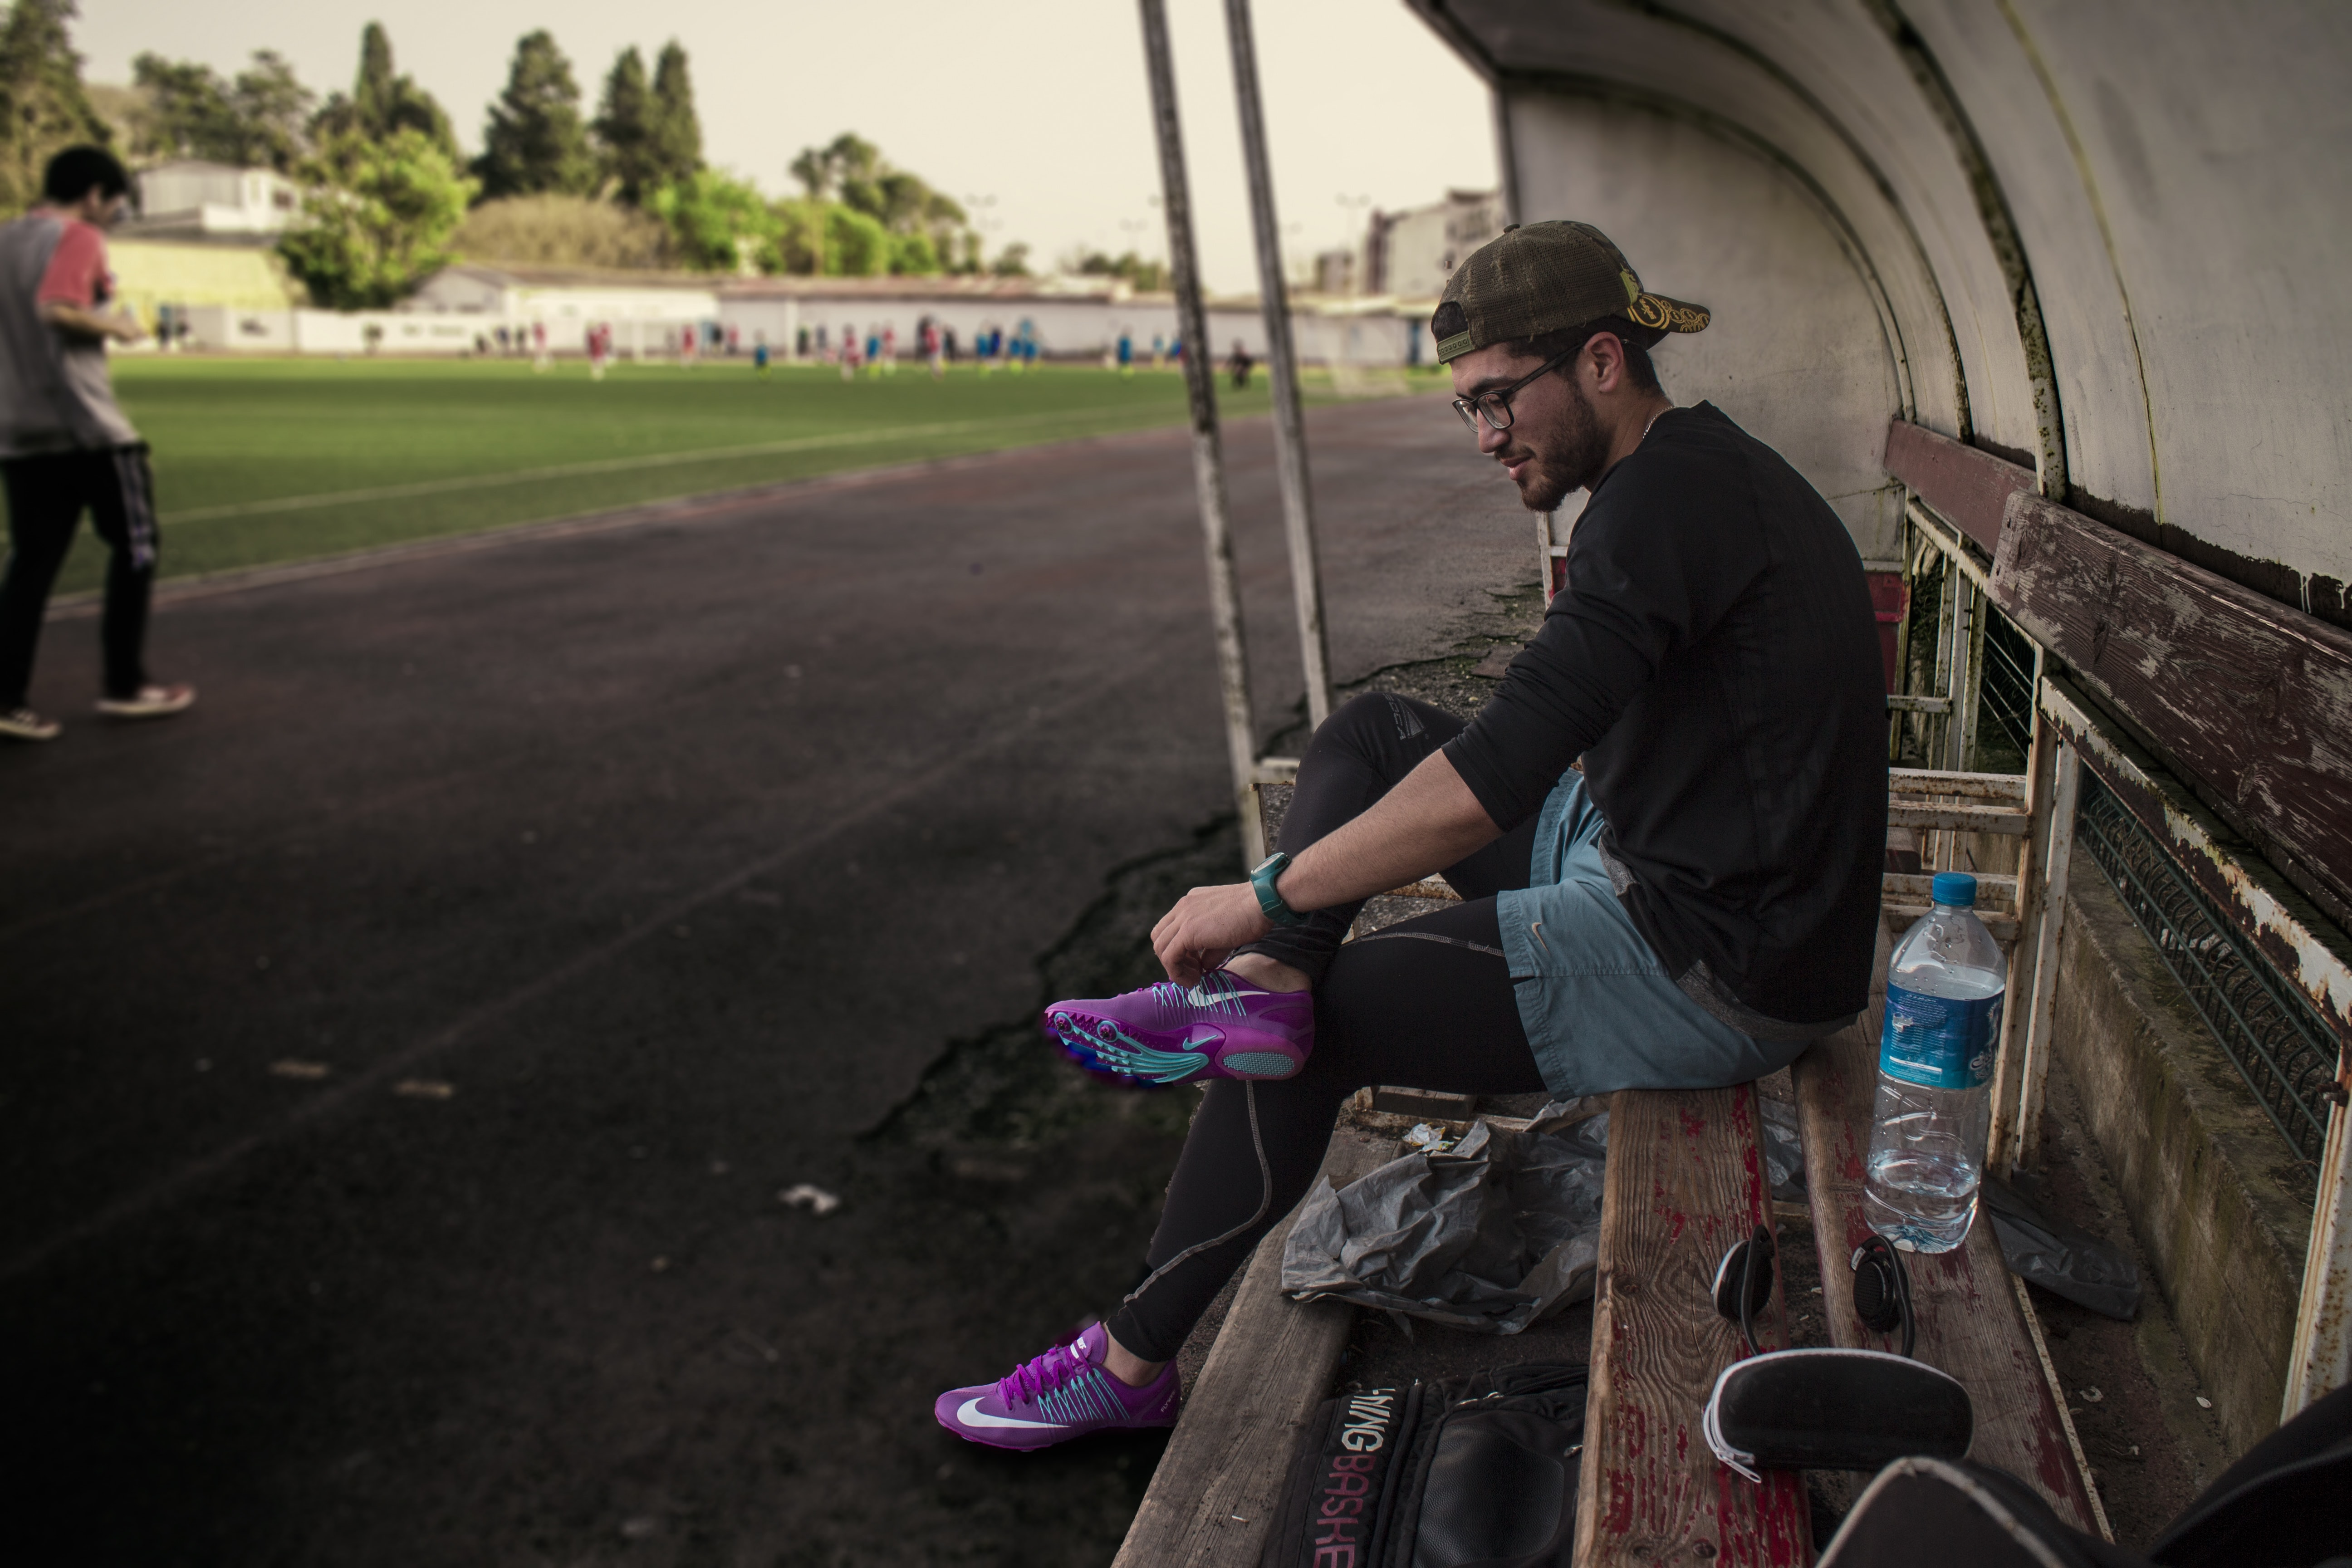 man tying his shoes while sitting on bench